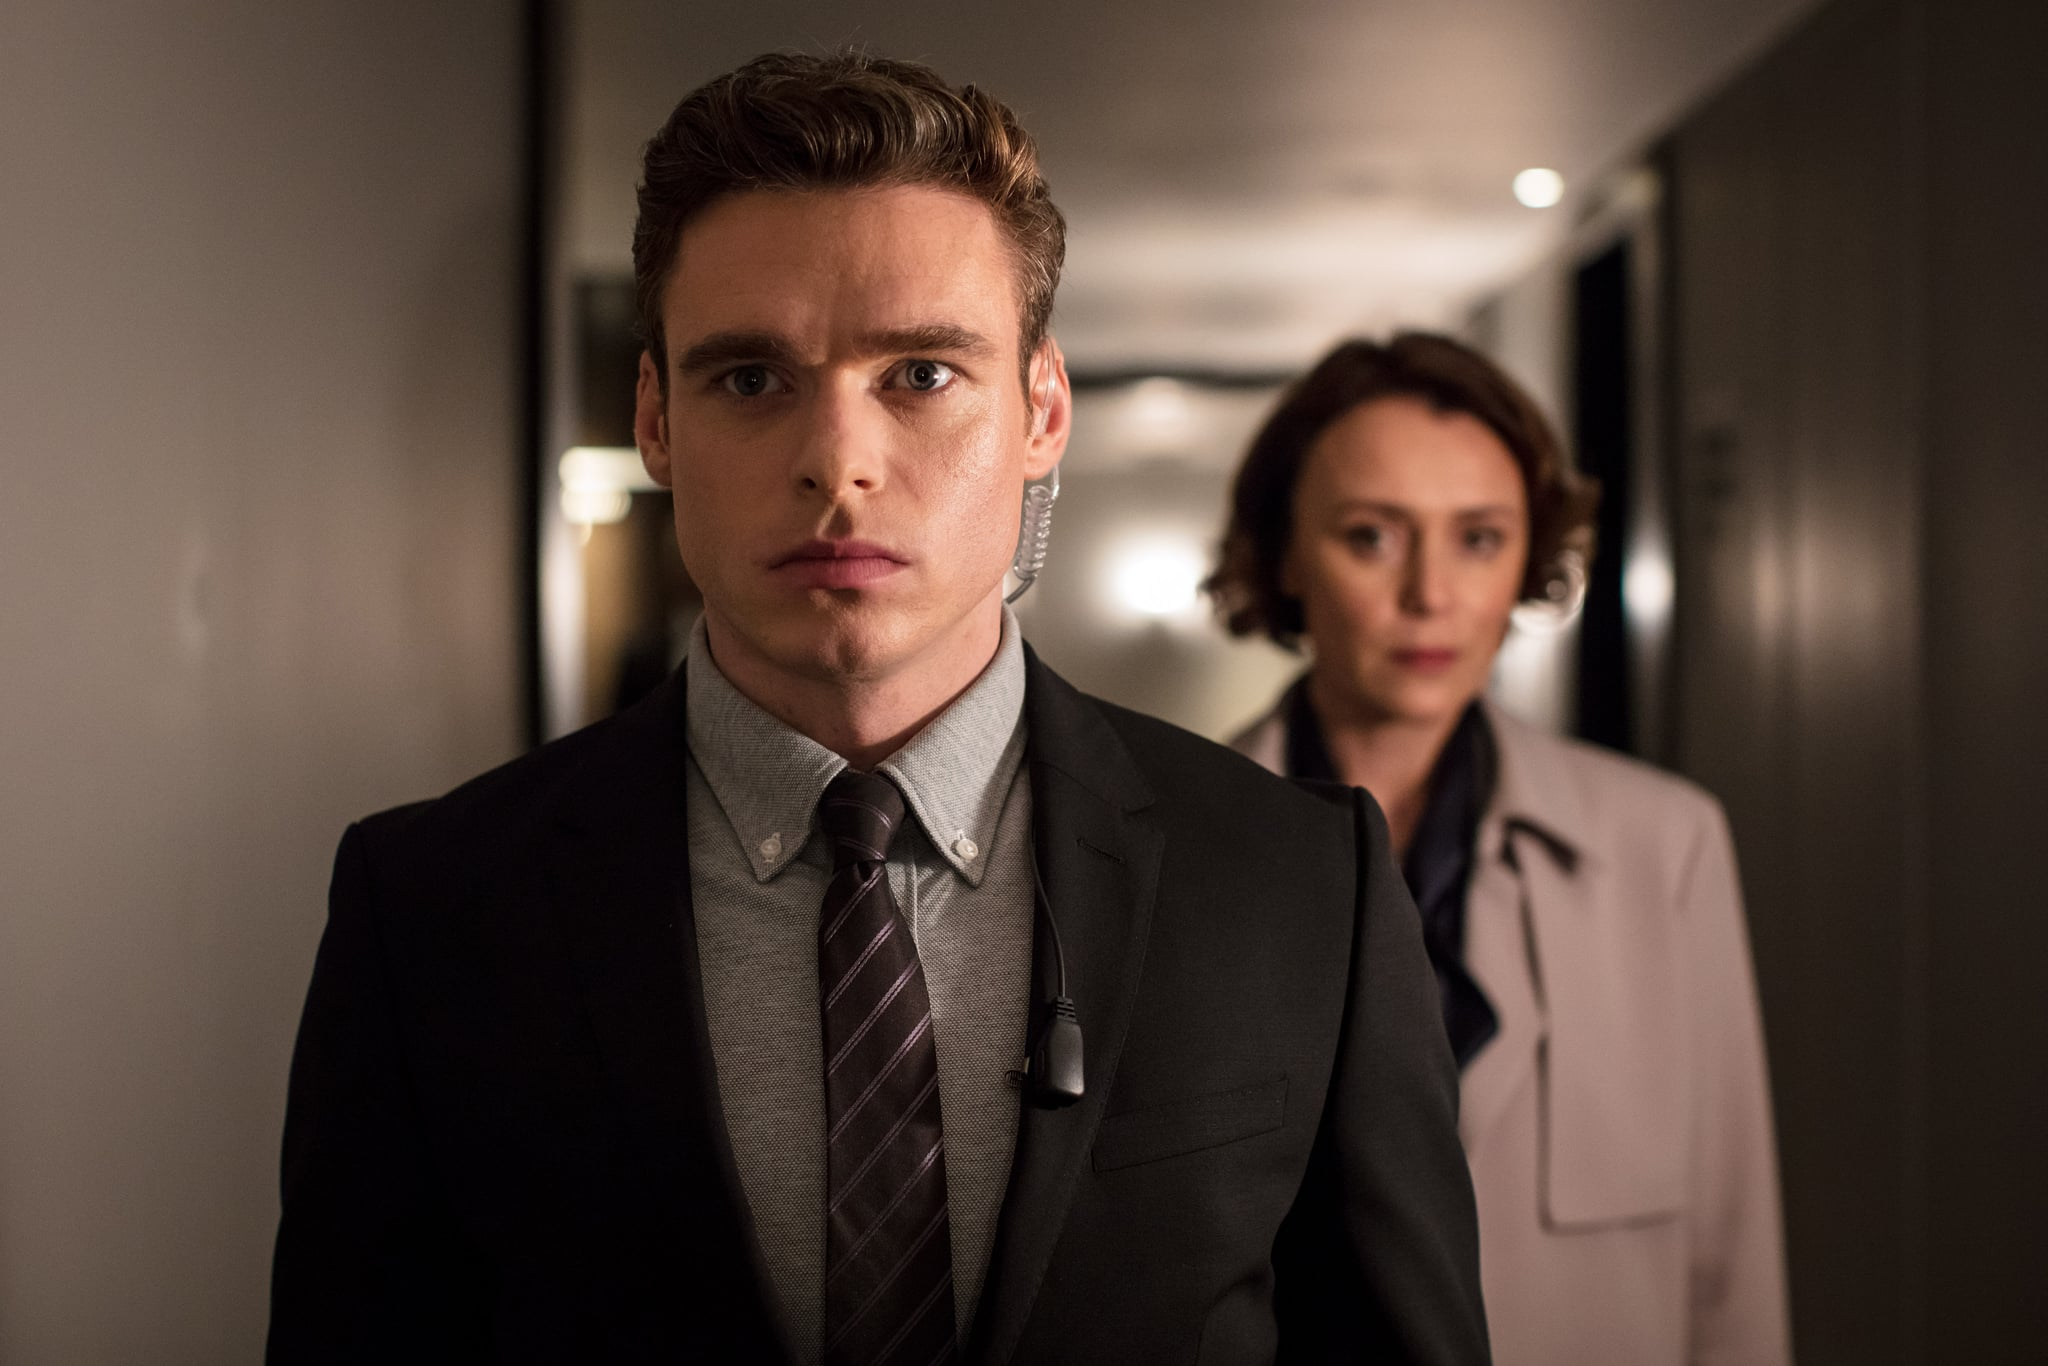 BODYGUARD, from left: Richard Madden, Keeley Hawes, 'Episode 3', (Season 1, ep. 103, aired in UK on Sept. 2, 2018/airs in US on Oct. 24, 2018). photo: Sophie Mutevelian / Netflix/BBC / Courtesy: Everett Collection